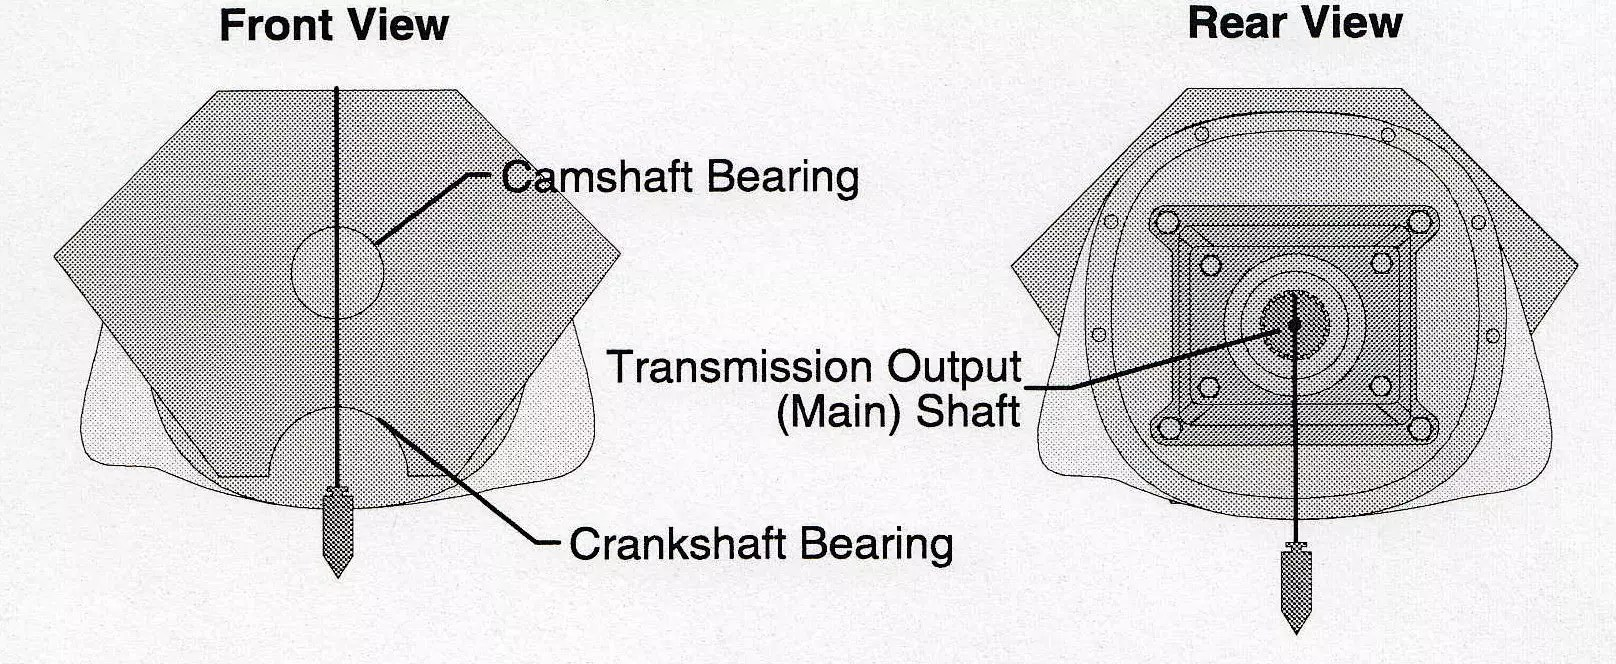 hight resolution of  to measure it hang a plumb bob at the front of the engine so that the string divides the camshaft and crankshaft bearing holes in half